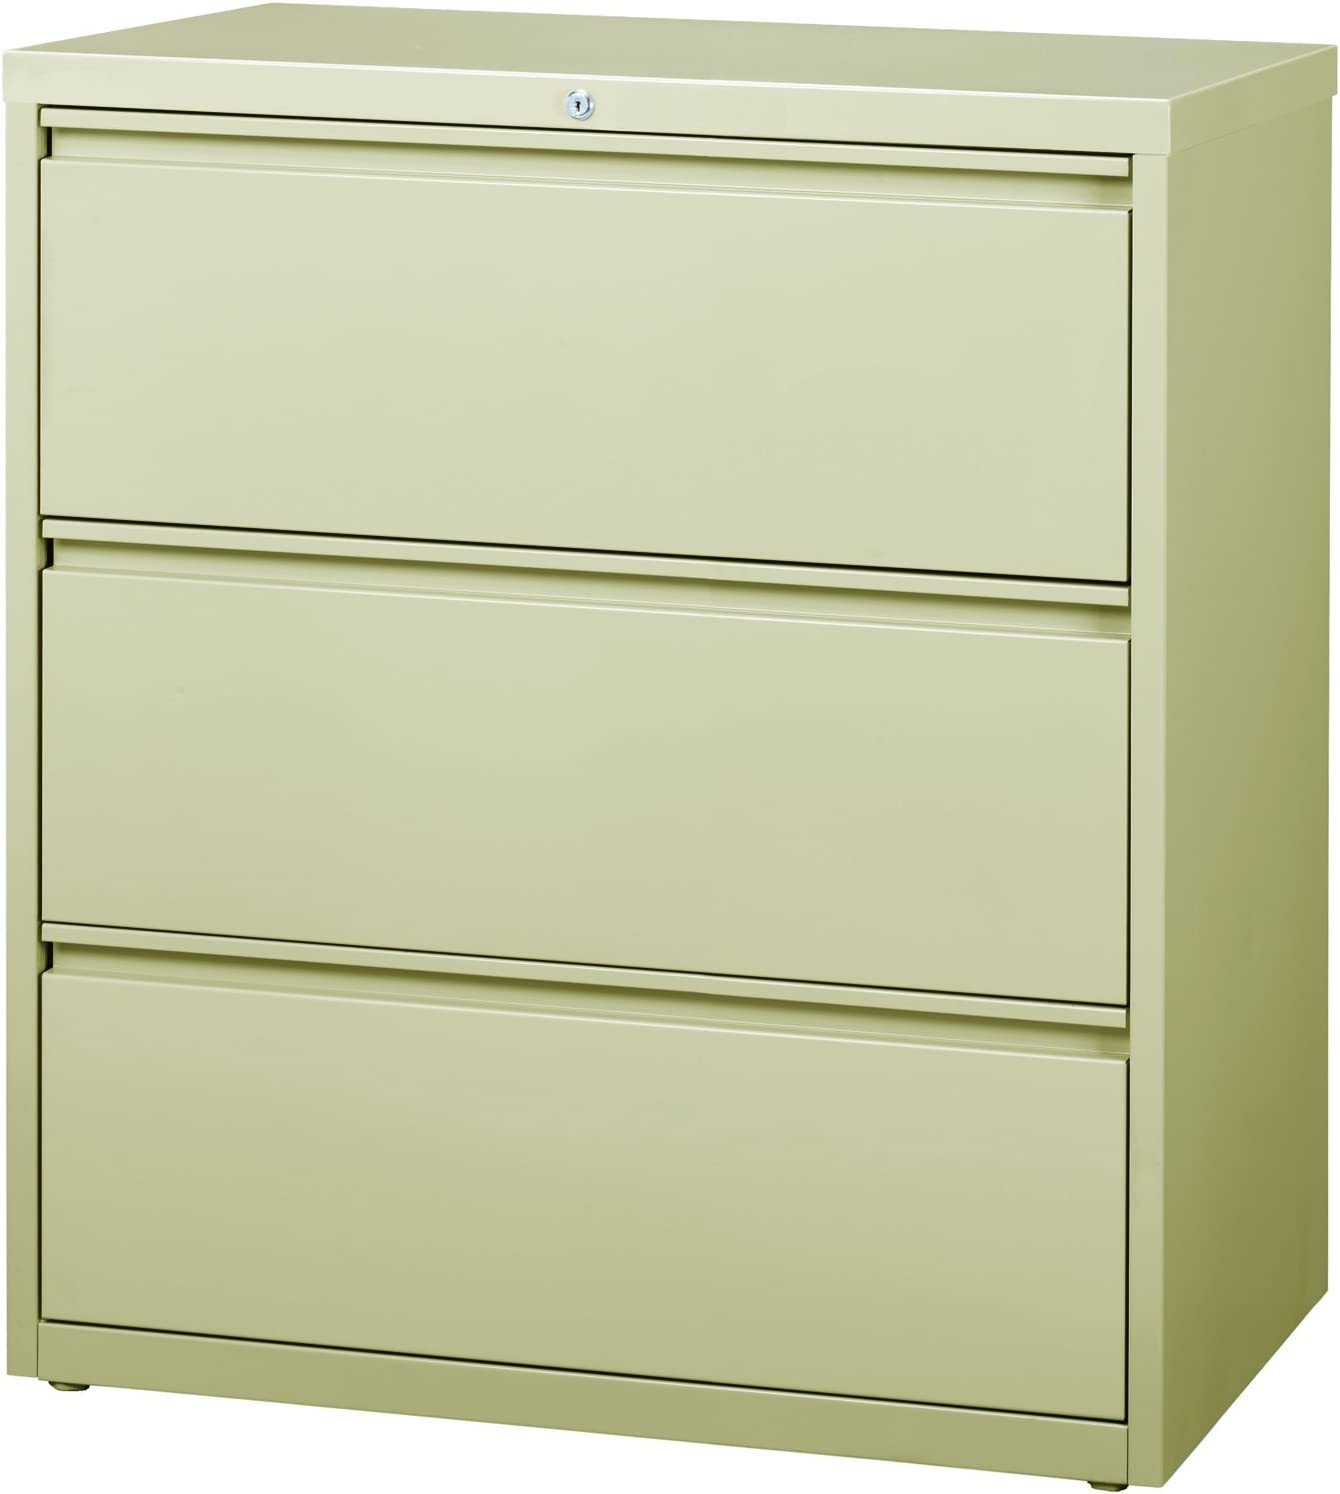 Office Dimensions Commercial Grade 36 Wide 3 Drawer Lateral File Cabinet Light Gray